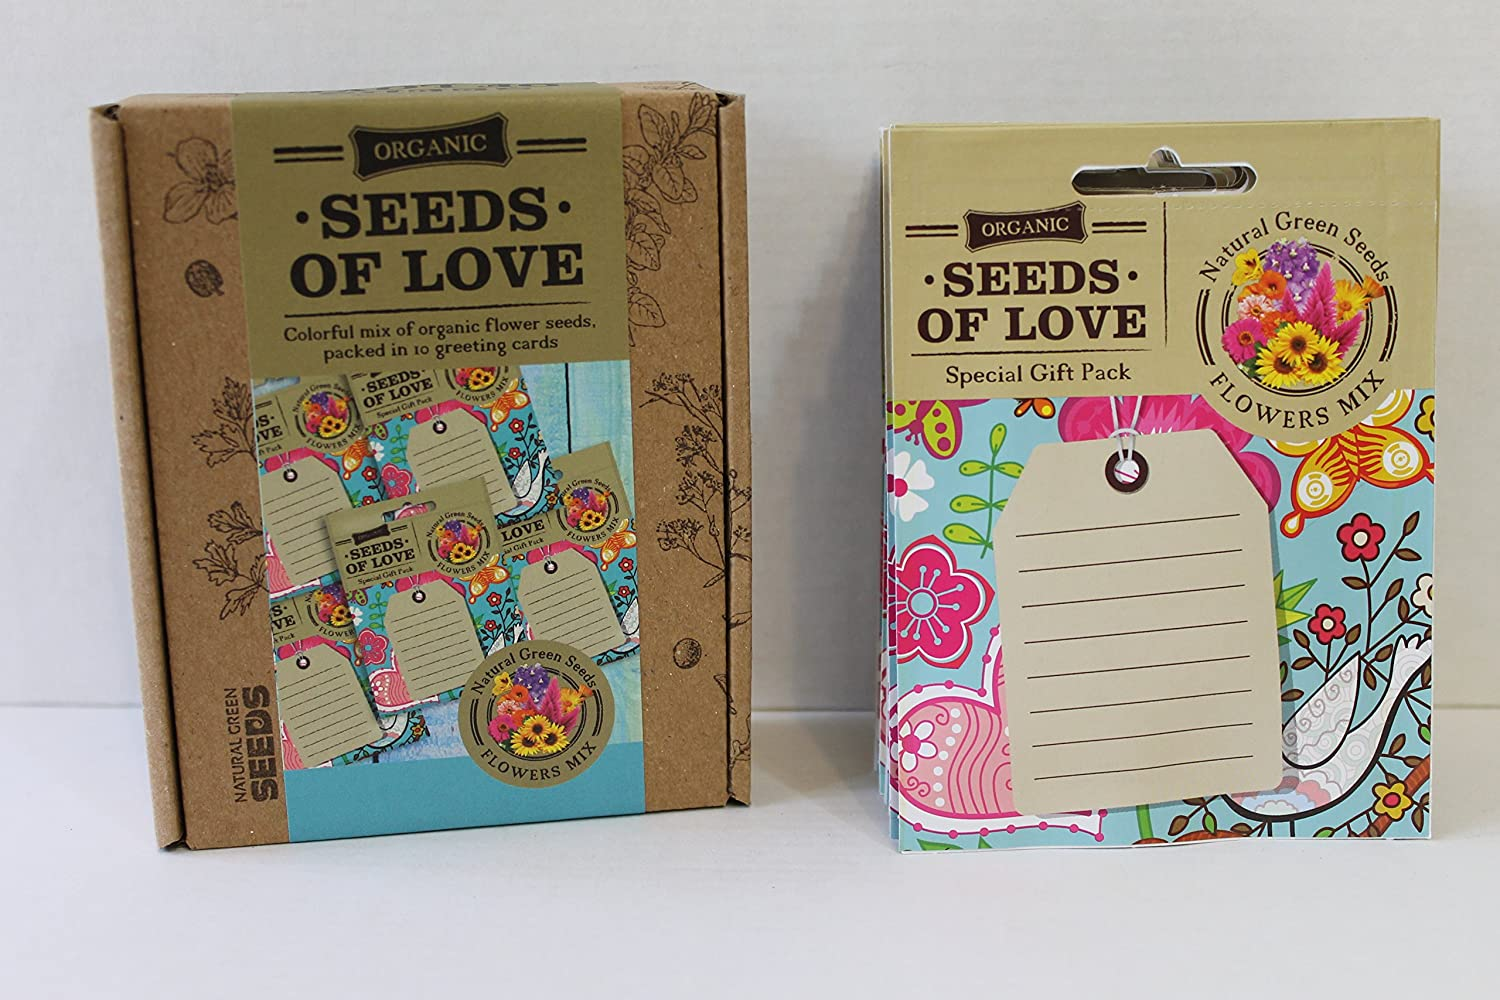 Amazon.com : GREETING CARDS SEED PACKETS, Organic Non GMO Flower ...